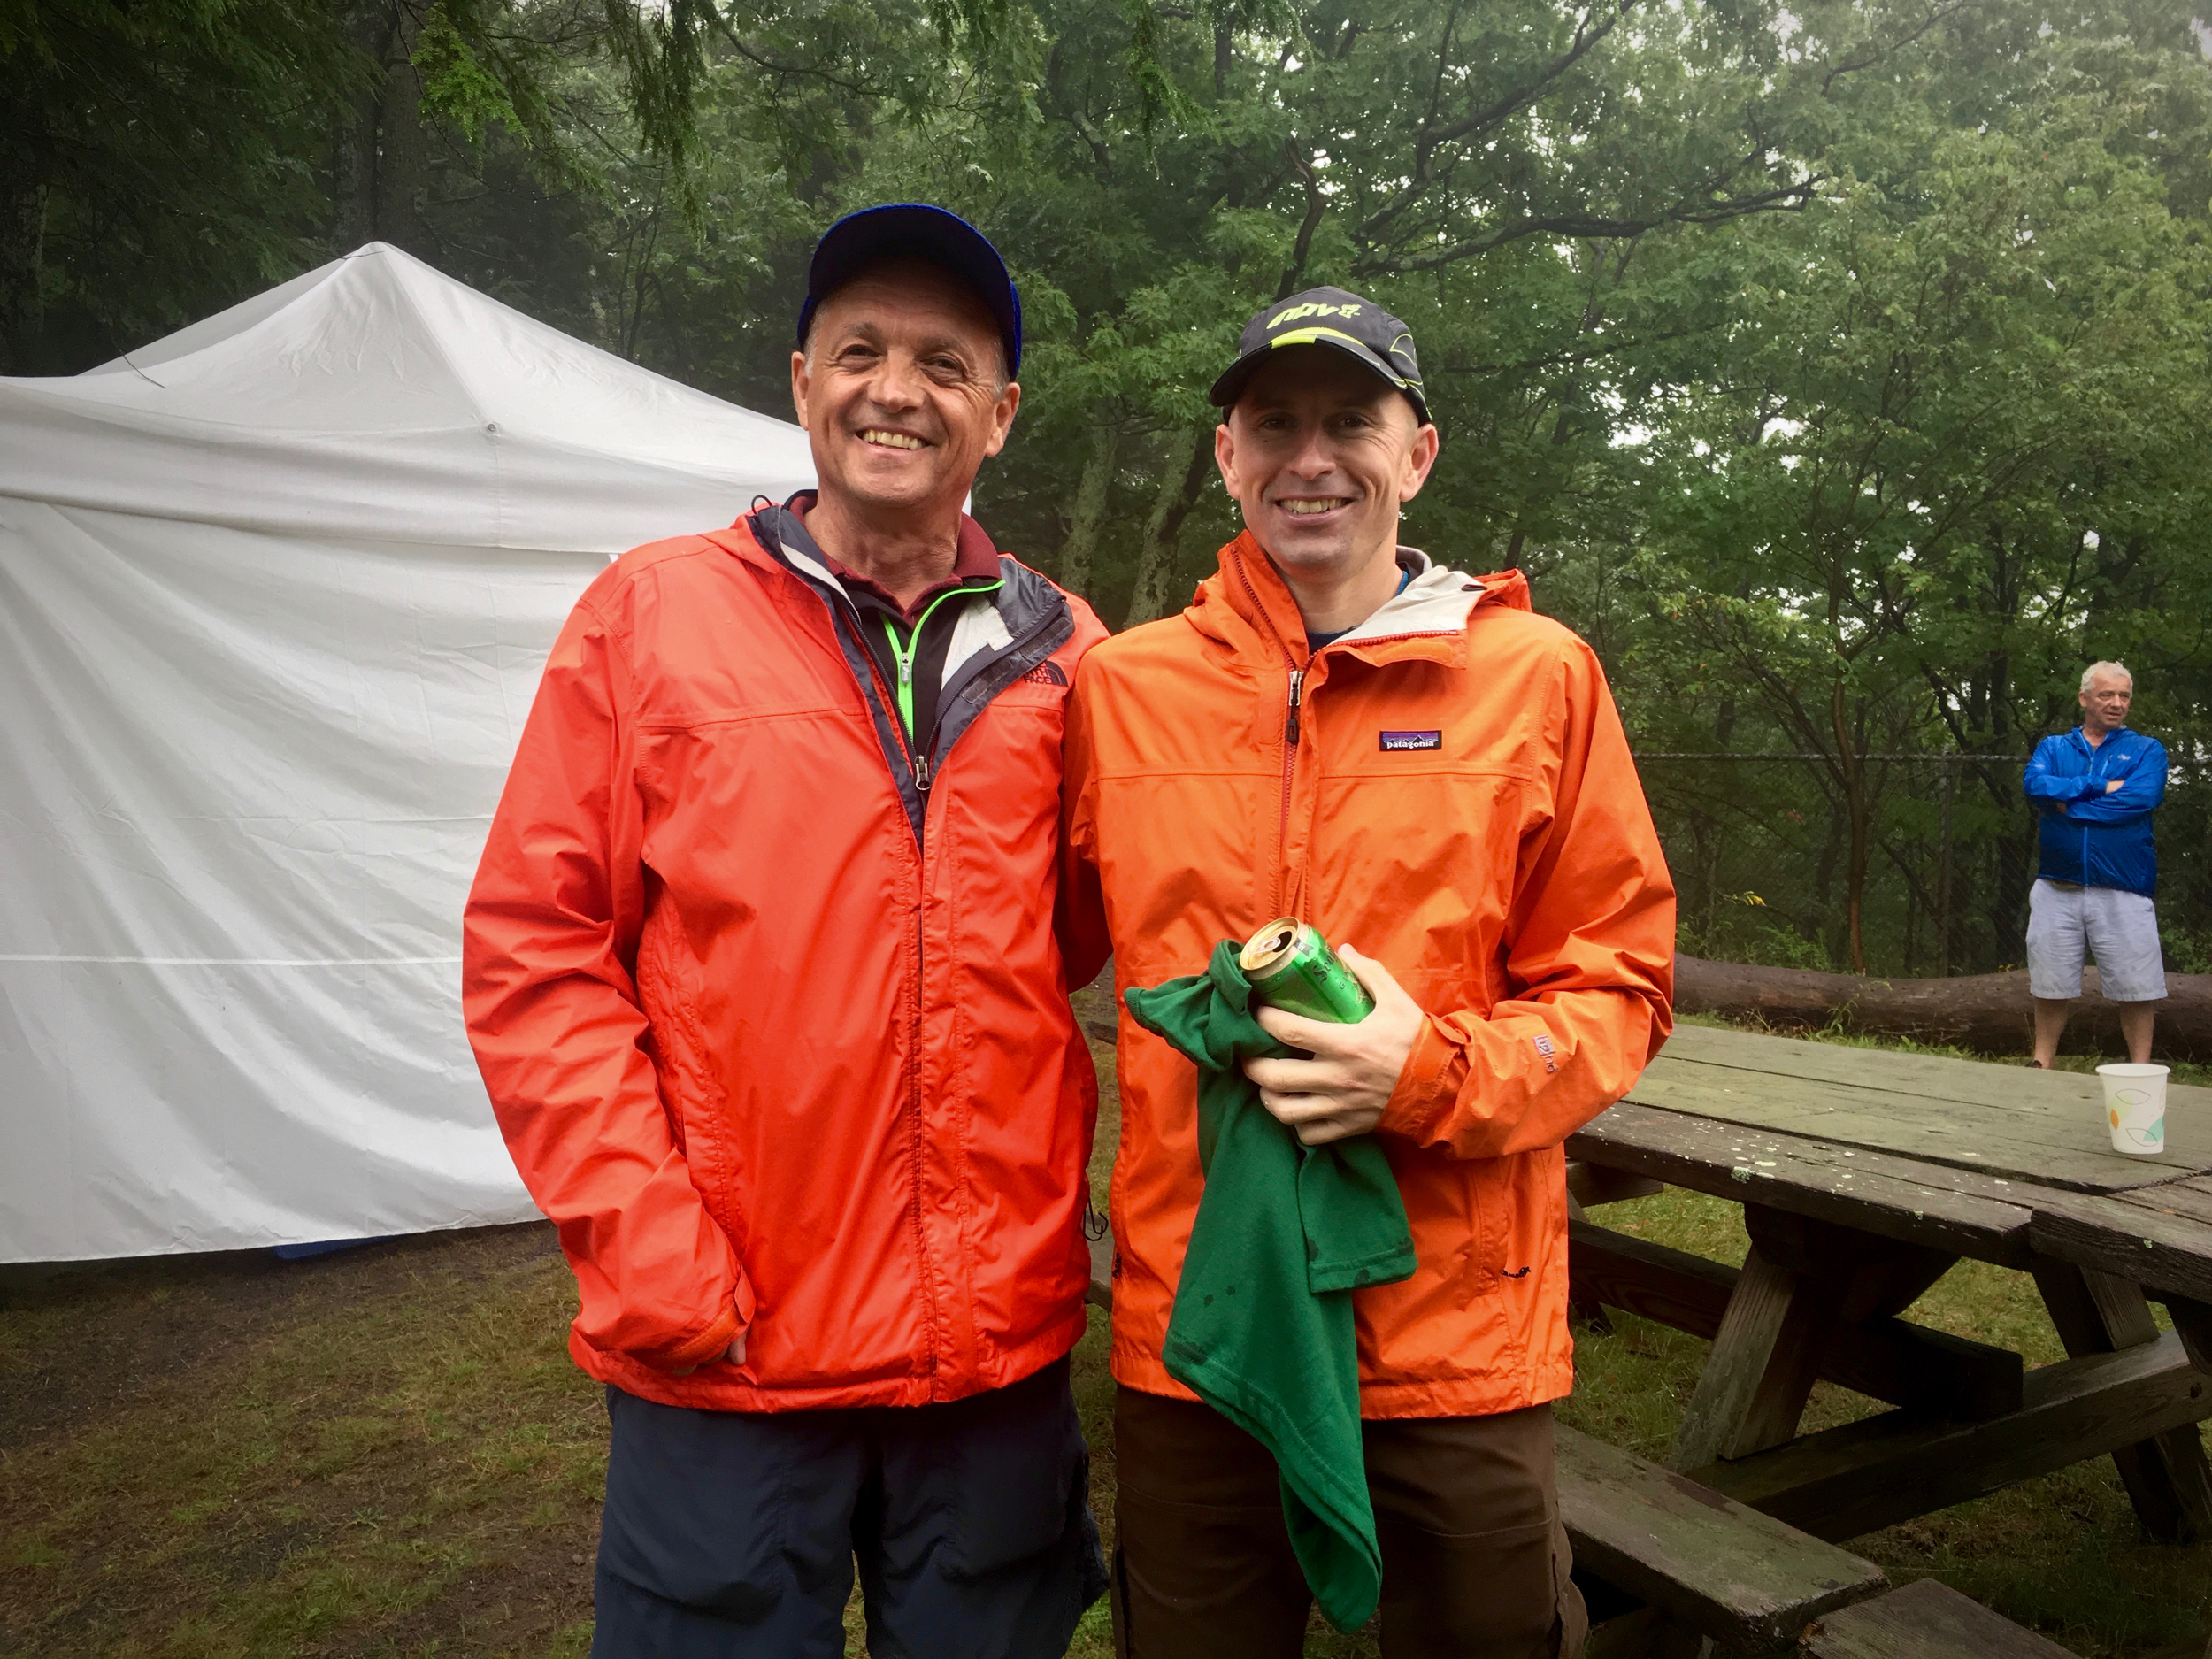 Dick Vincent who is the Escarpment Trail Runs RD for the 40th year running, standing with 13 x winner and a member of the 300 mile club, Ben Nephew!